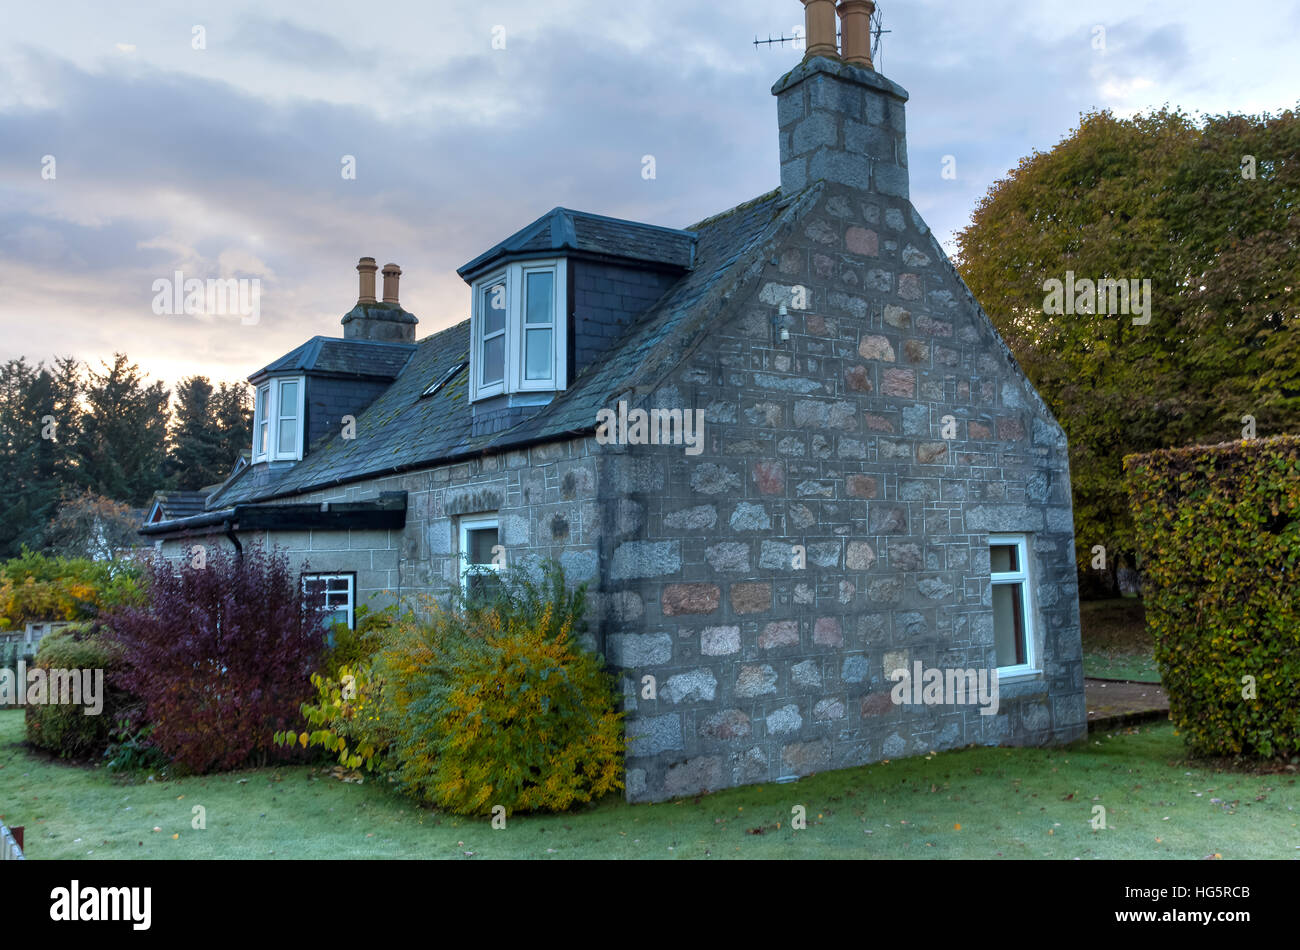 A Typical Stone Scottish Cottage In The Highlands Of Scotland